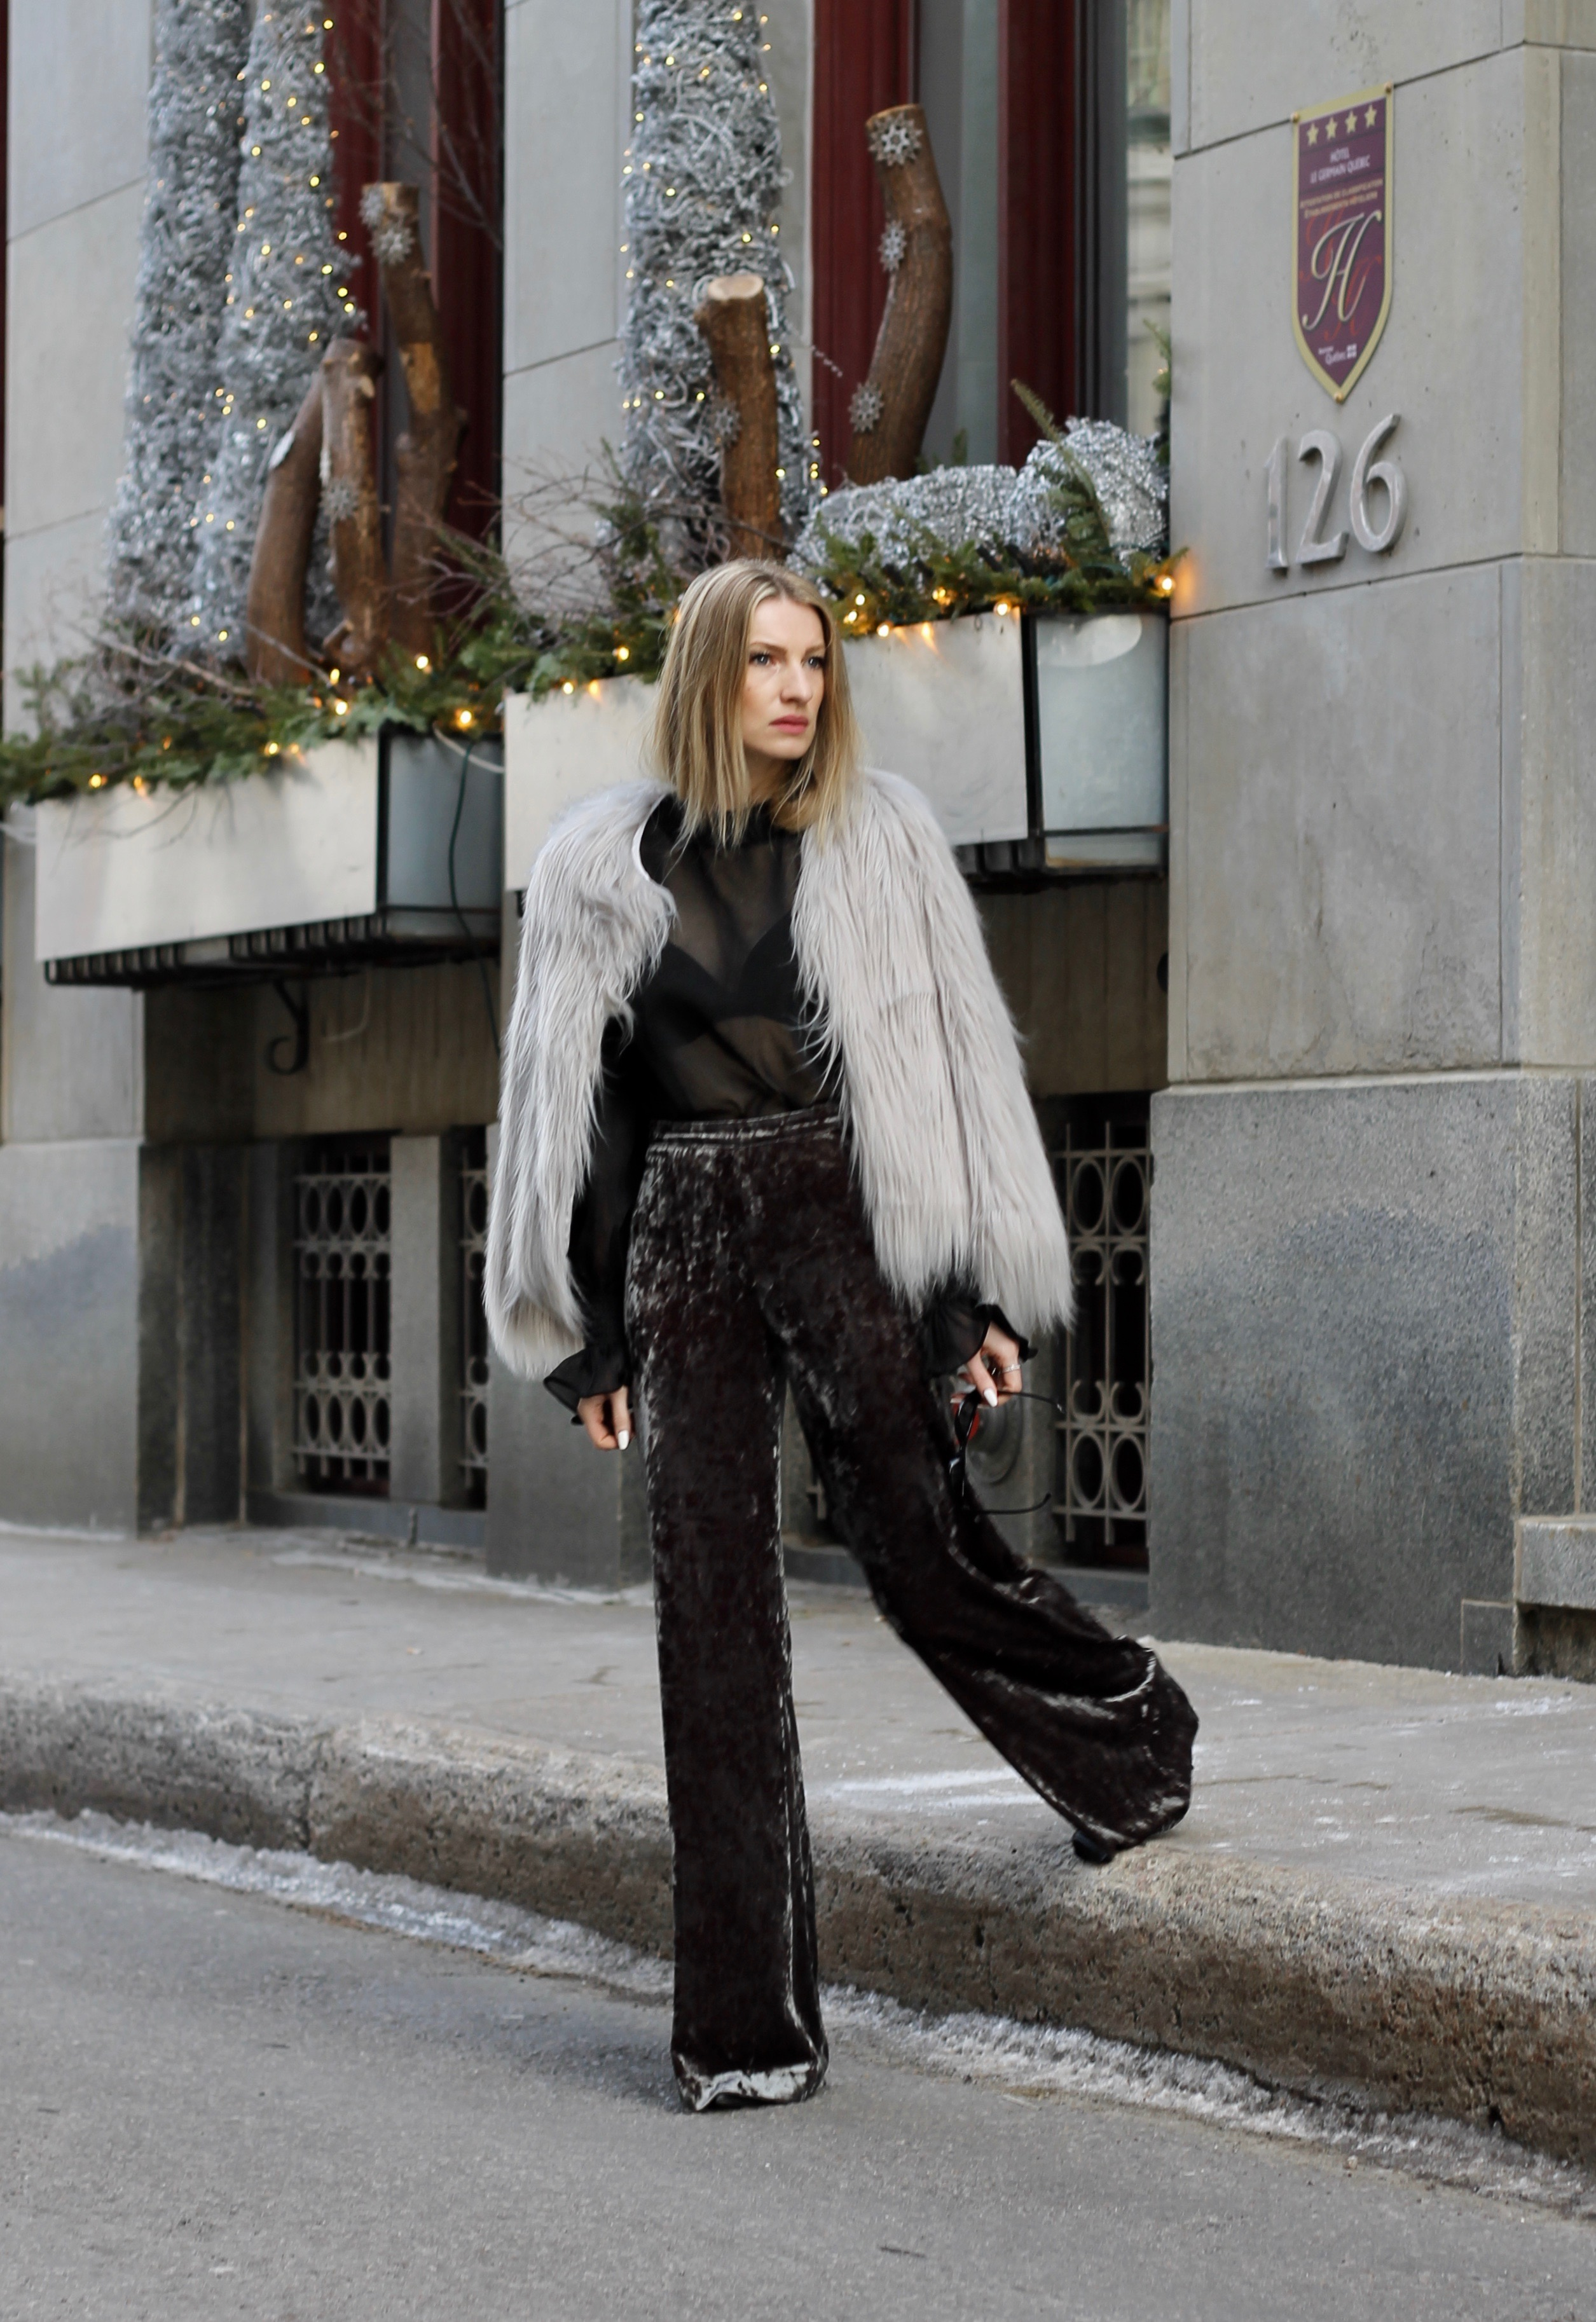 MON MODE Blog | Mon Mode | Style Blog | Toronto Blogger | Fall 2017 Trends | Ruffle | Denim Culottes